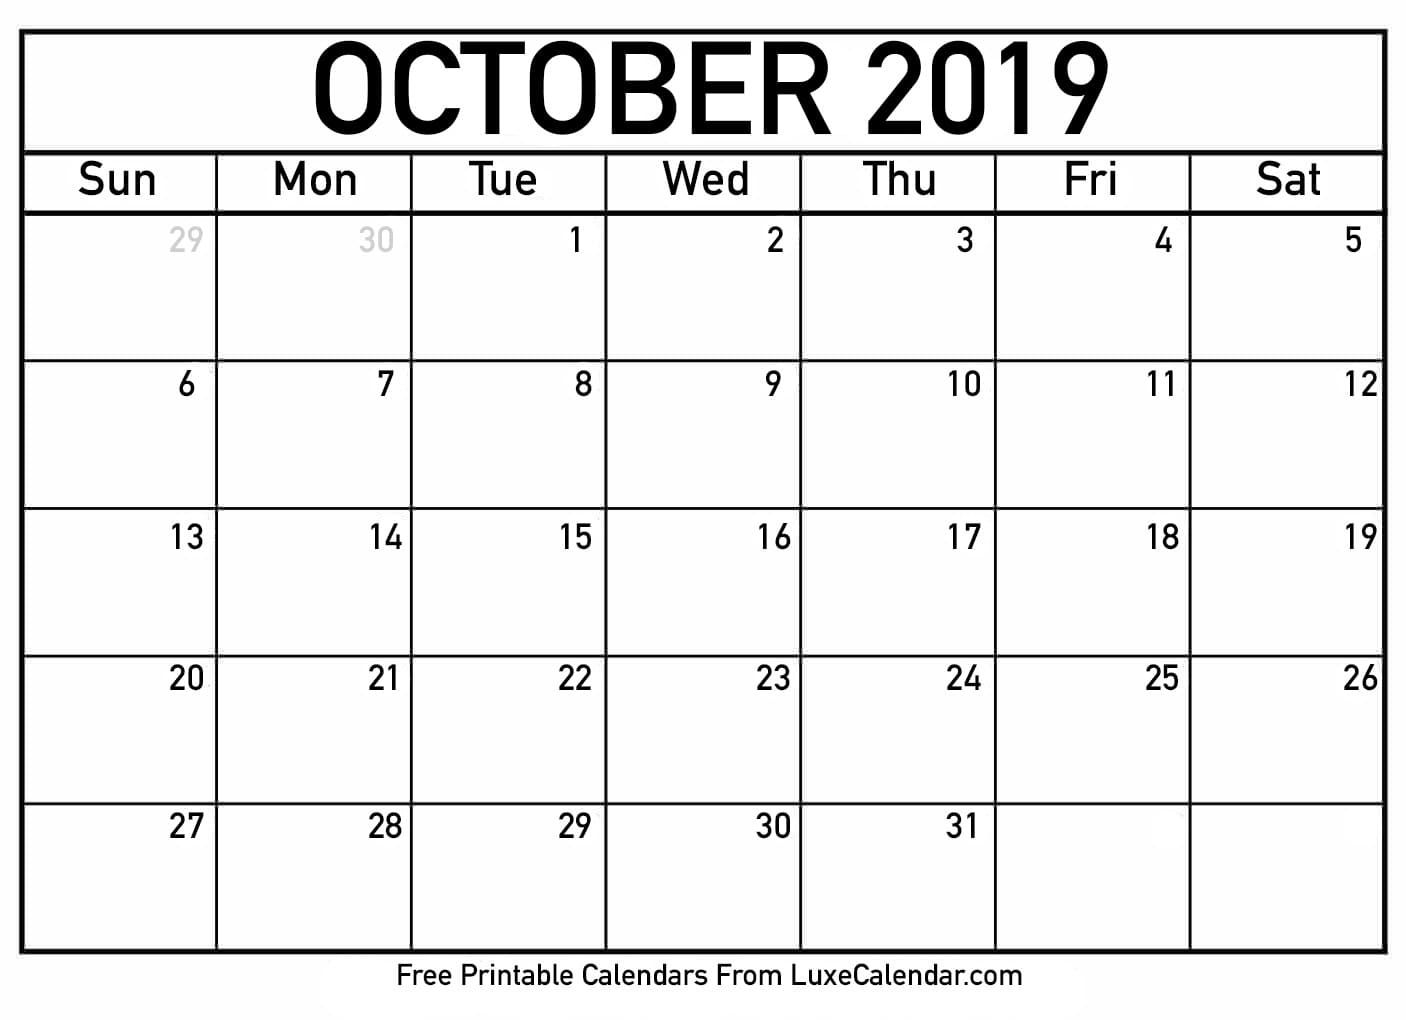 Print Free Calendars Without Downloading 2019 October